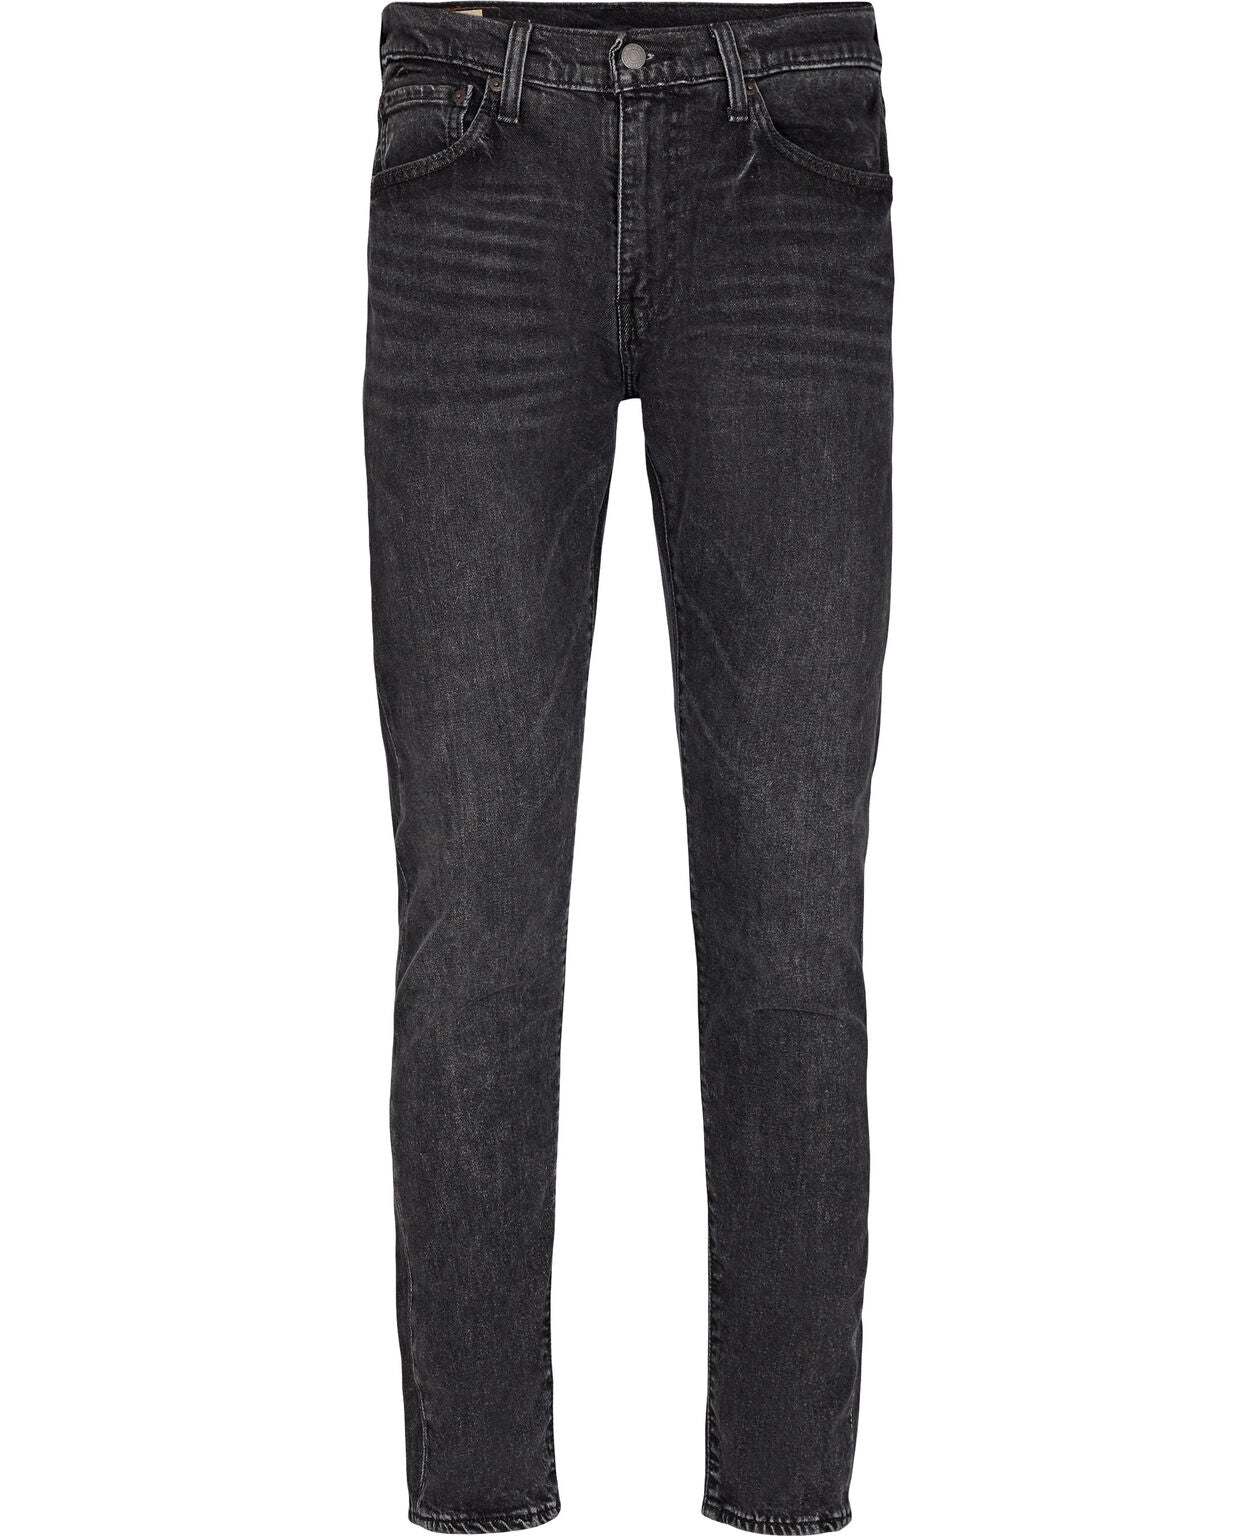 Jeans - 512 Slim Tapered Smoke On The - Levis